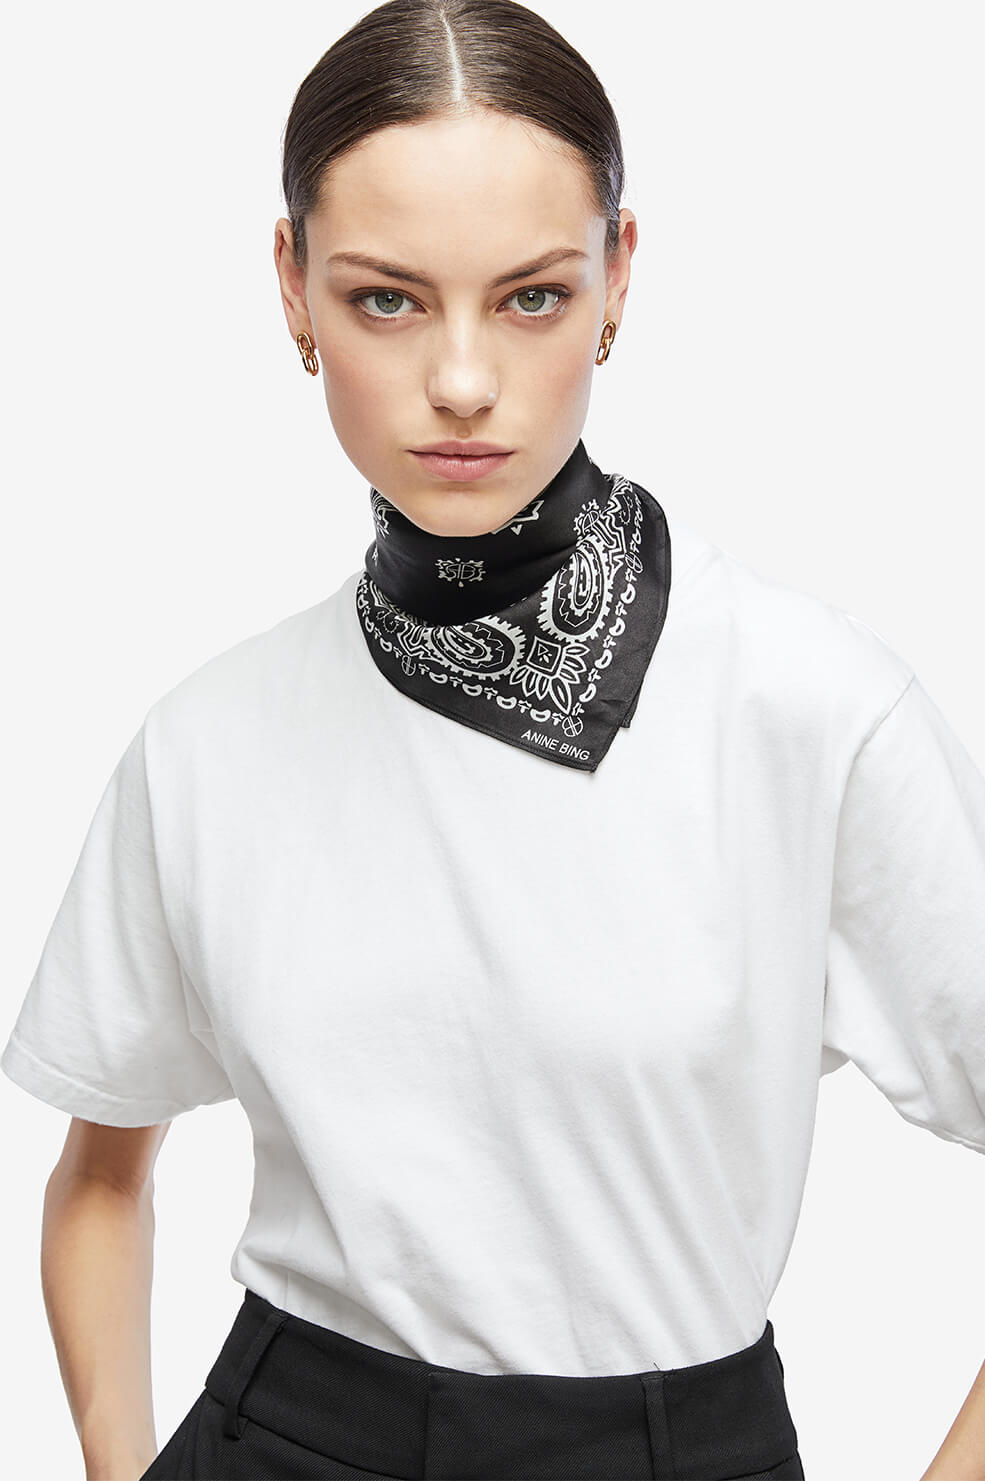 ANINE BING Arizona Scarf - Cream And Black